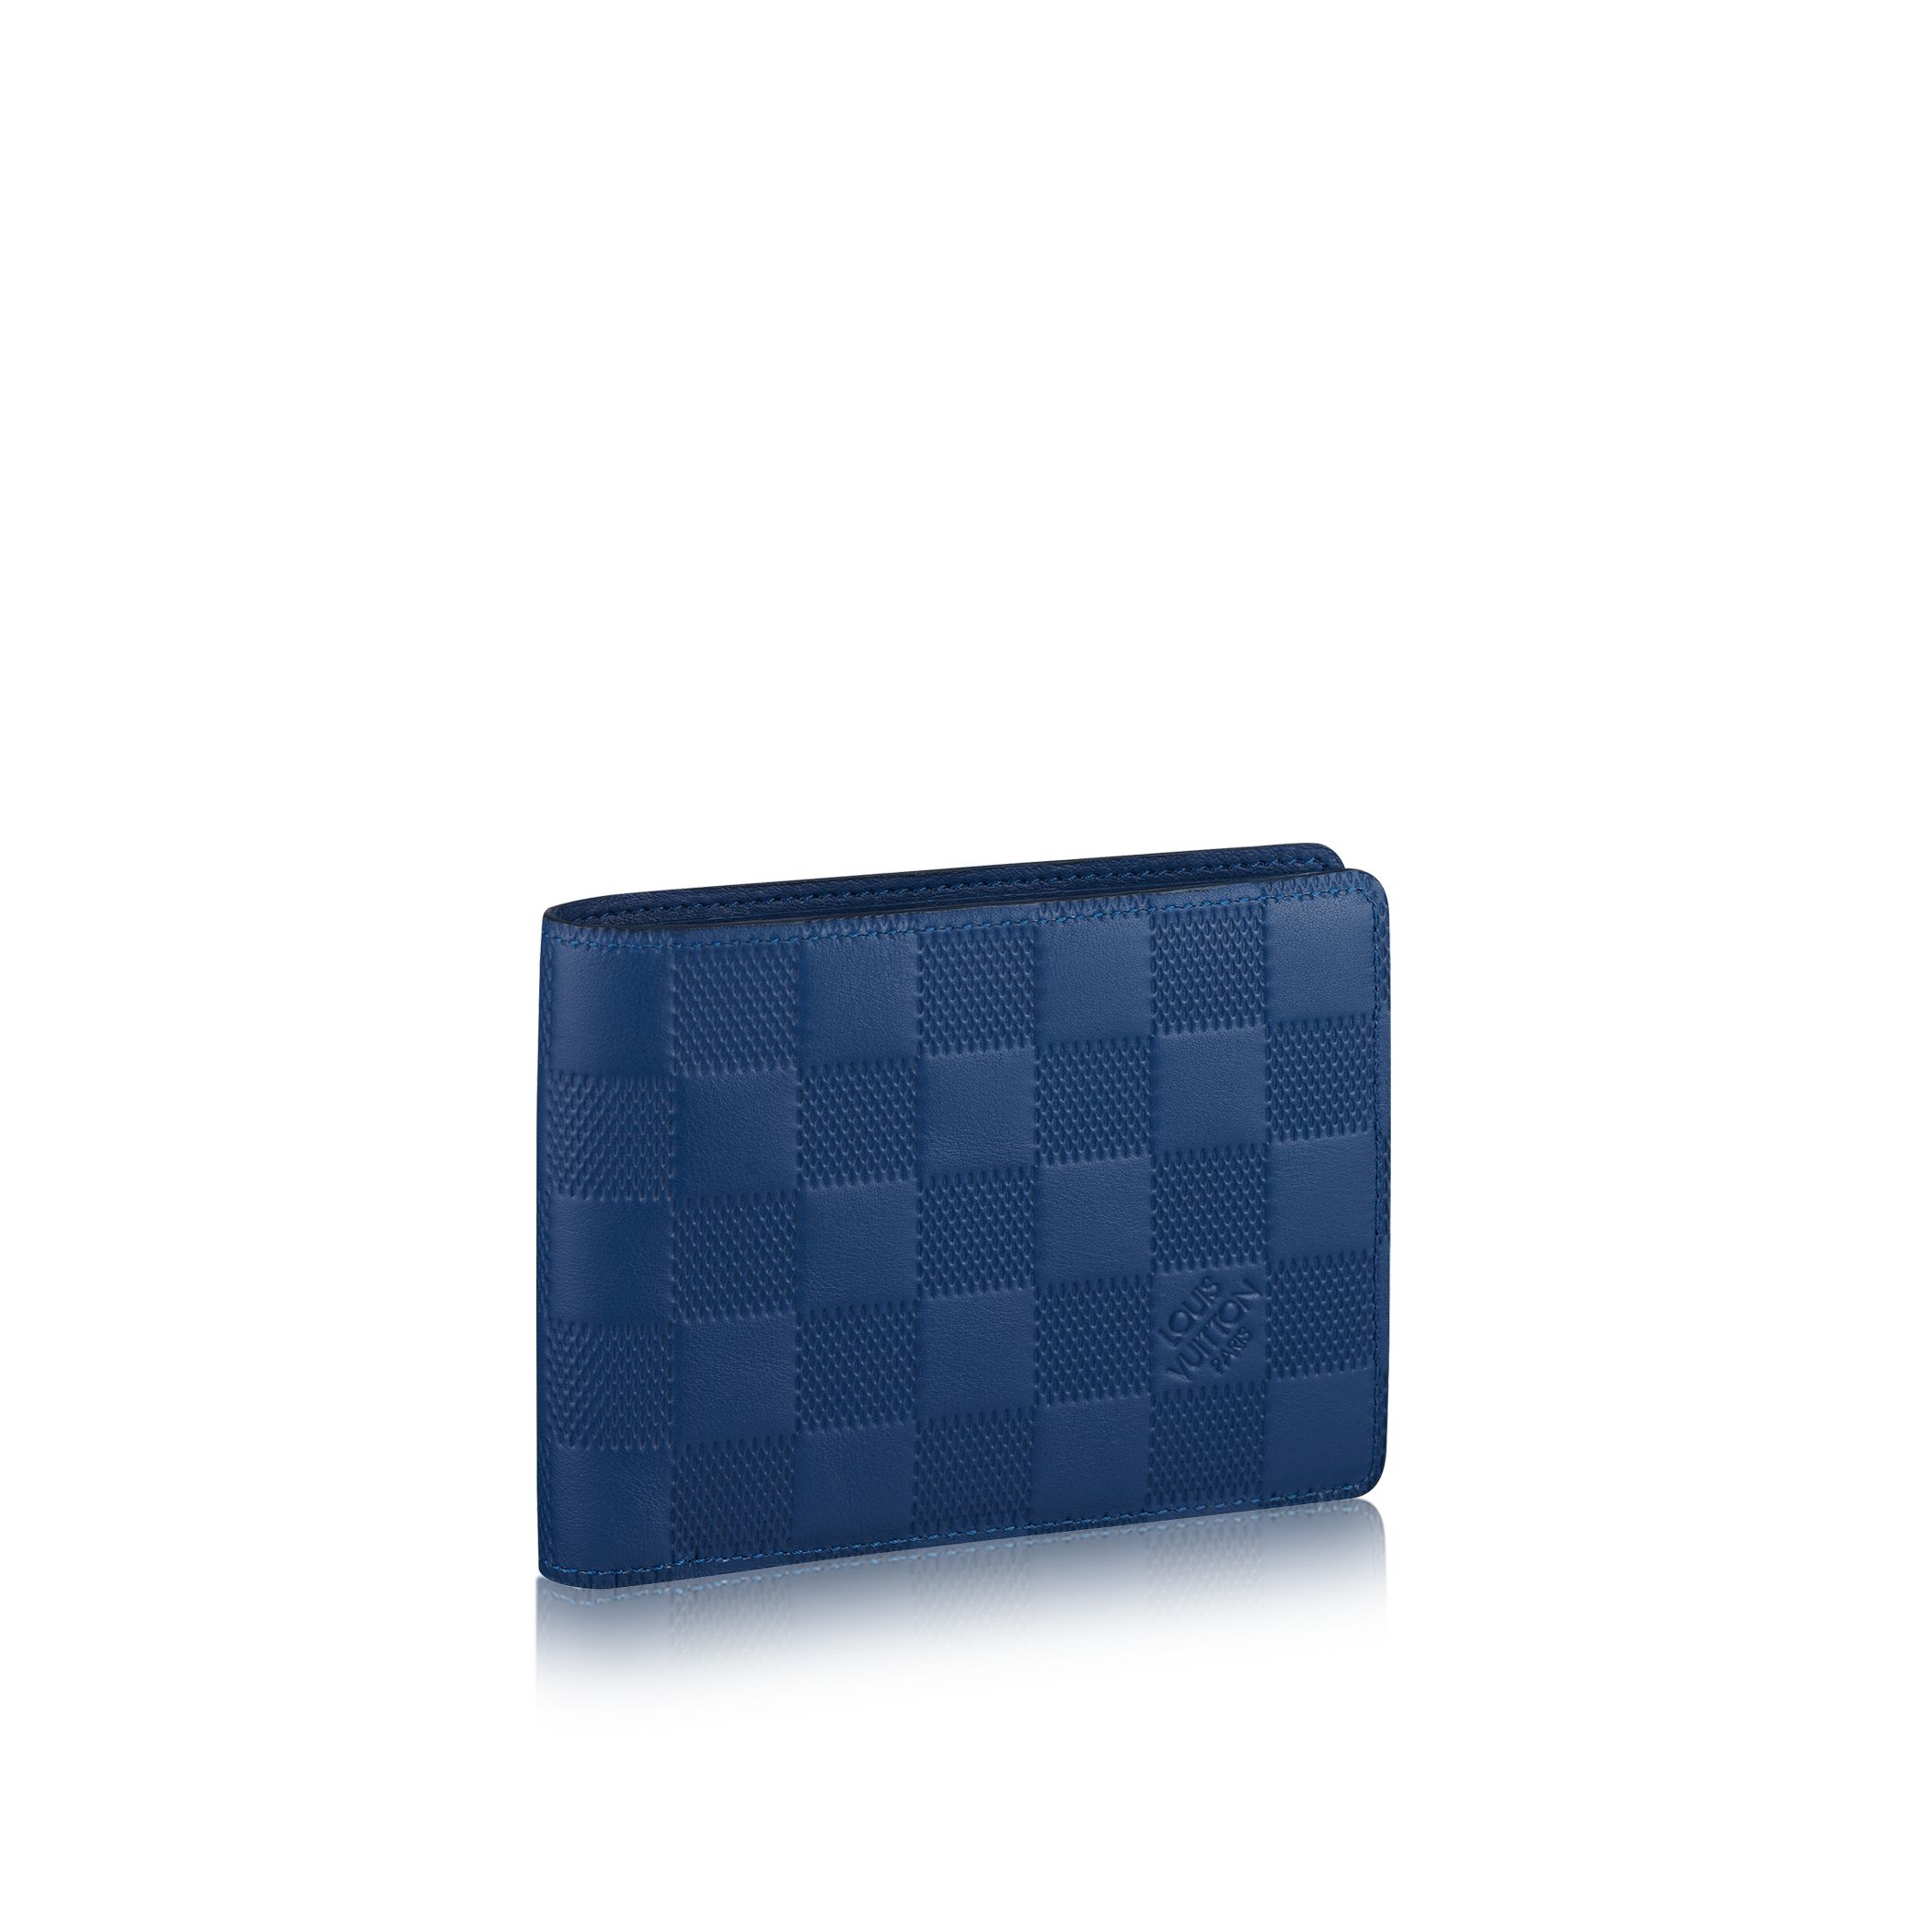 5575c5d5218a02 Blue Wallets For Men | Stanford Center for Opportunity Policy in ...